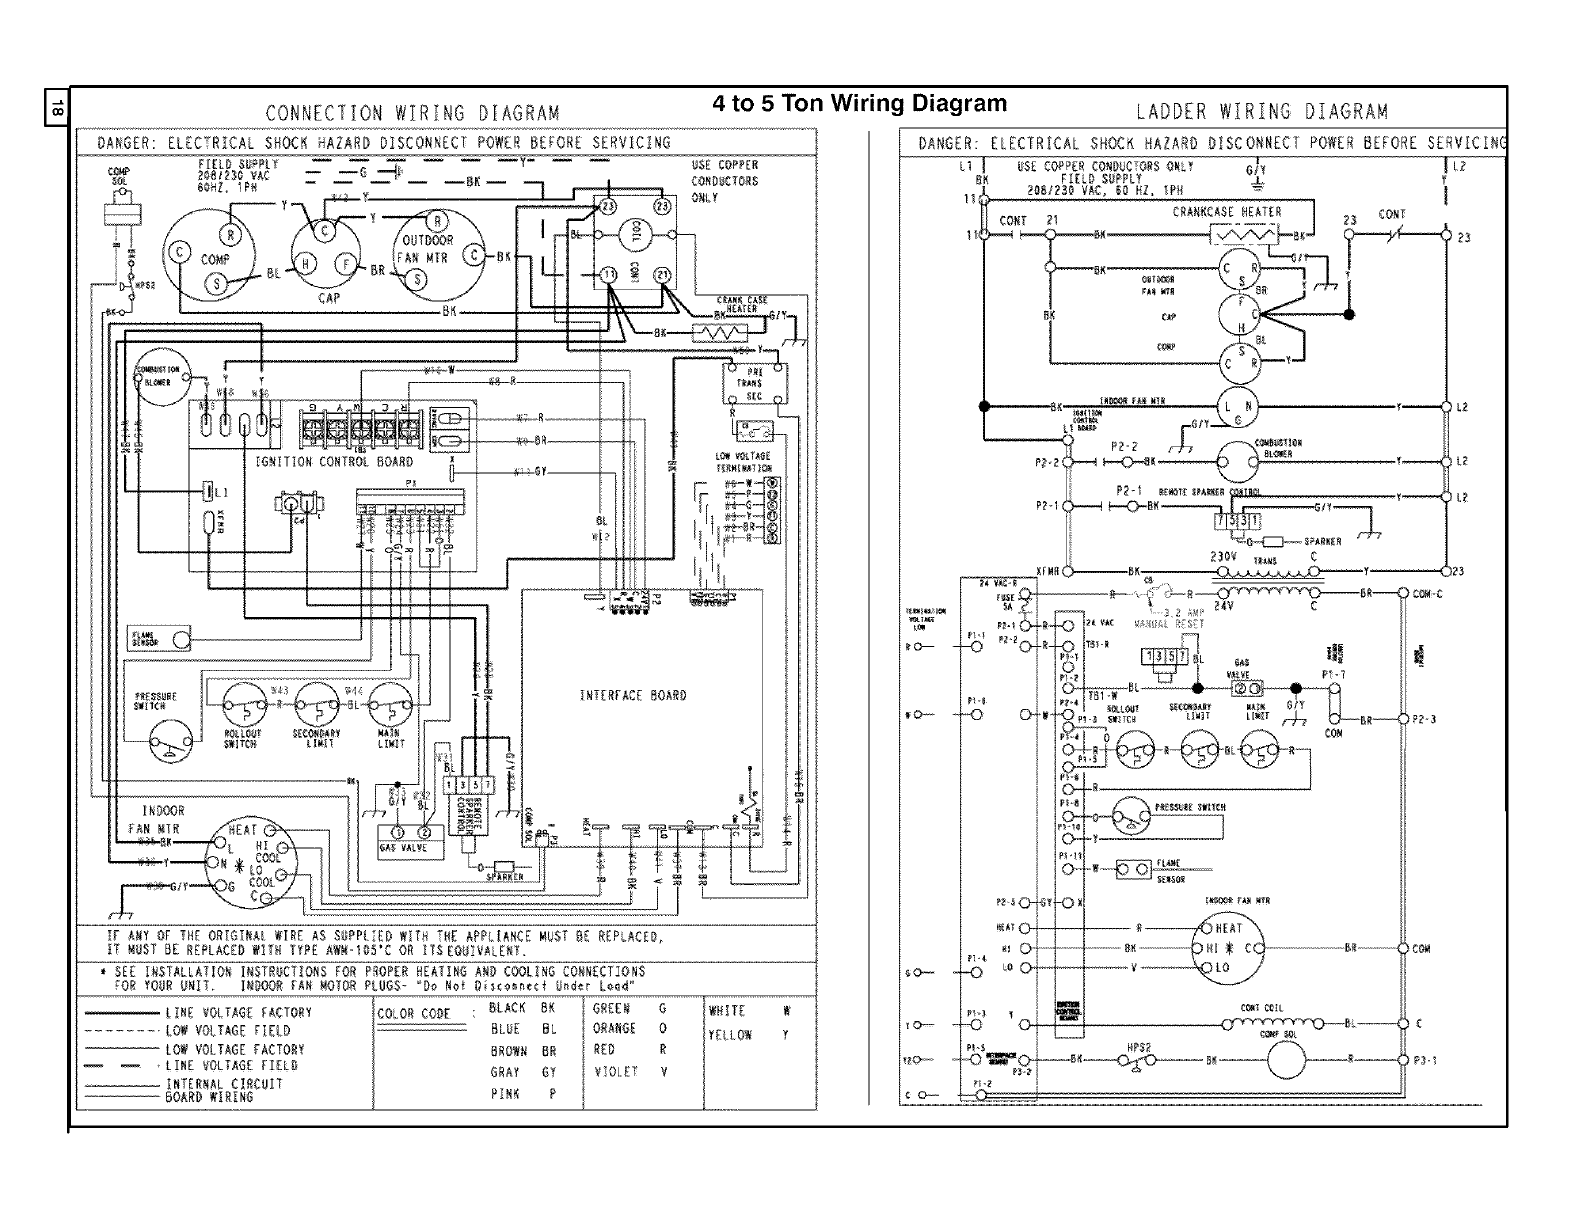 Icp Package Unitsboth Units Combined Manual L0611130 Wiring Diagram E Connection